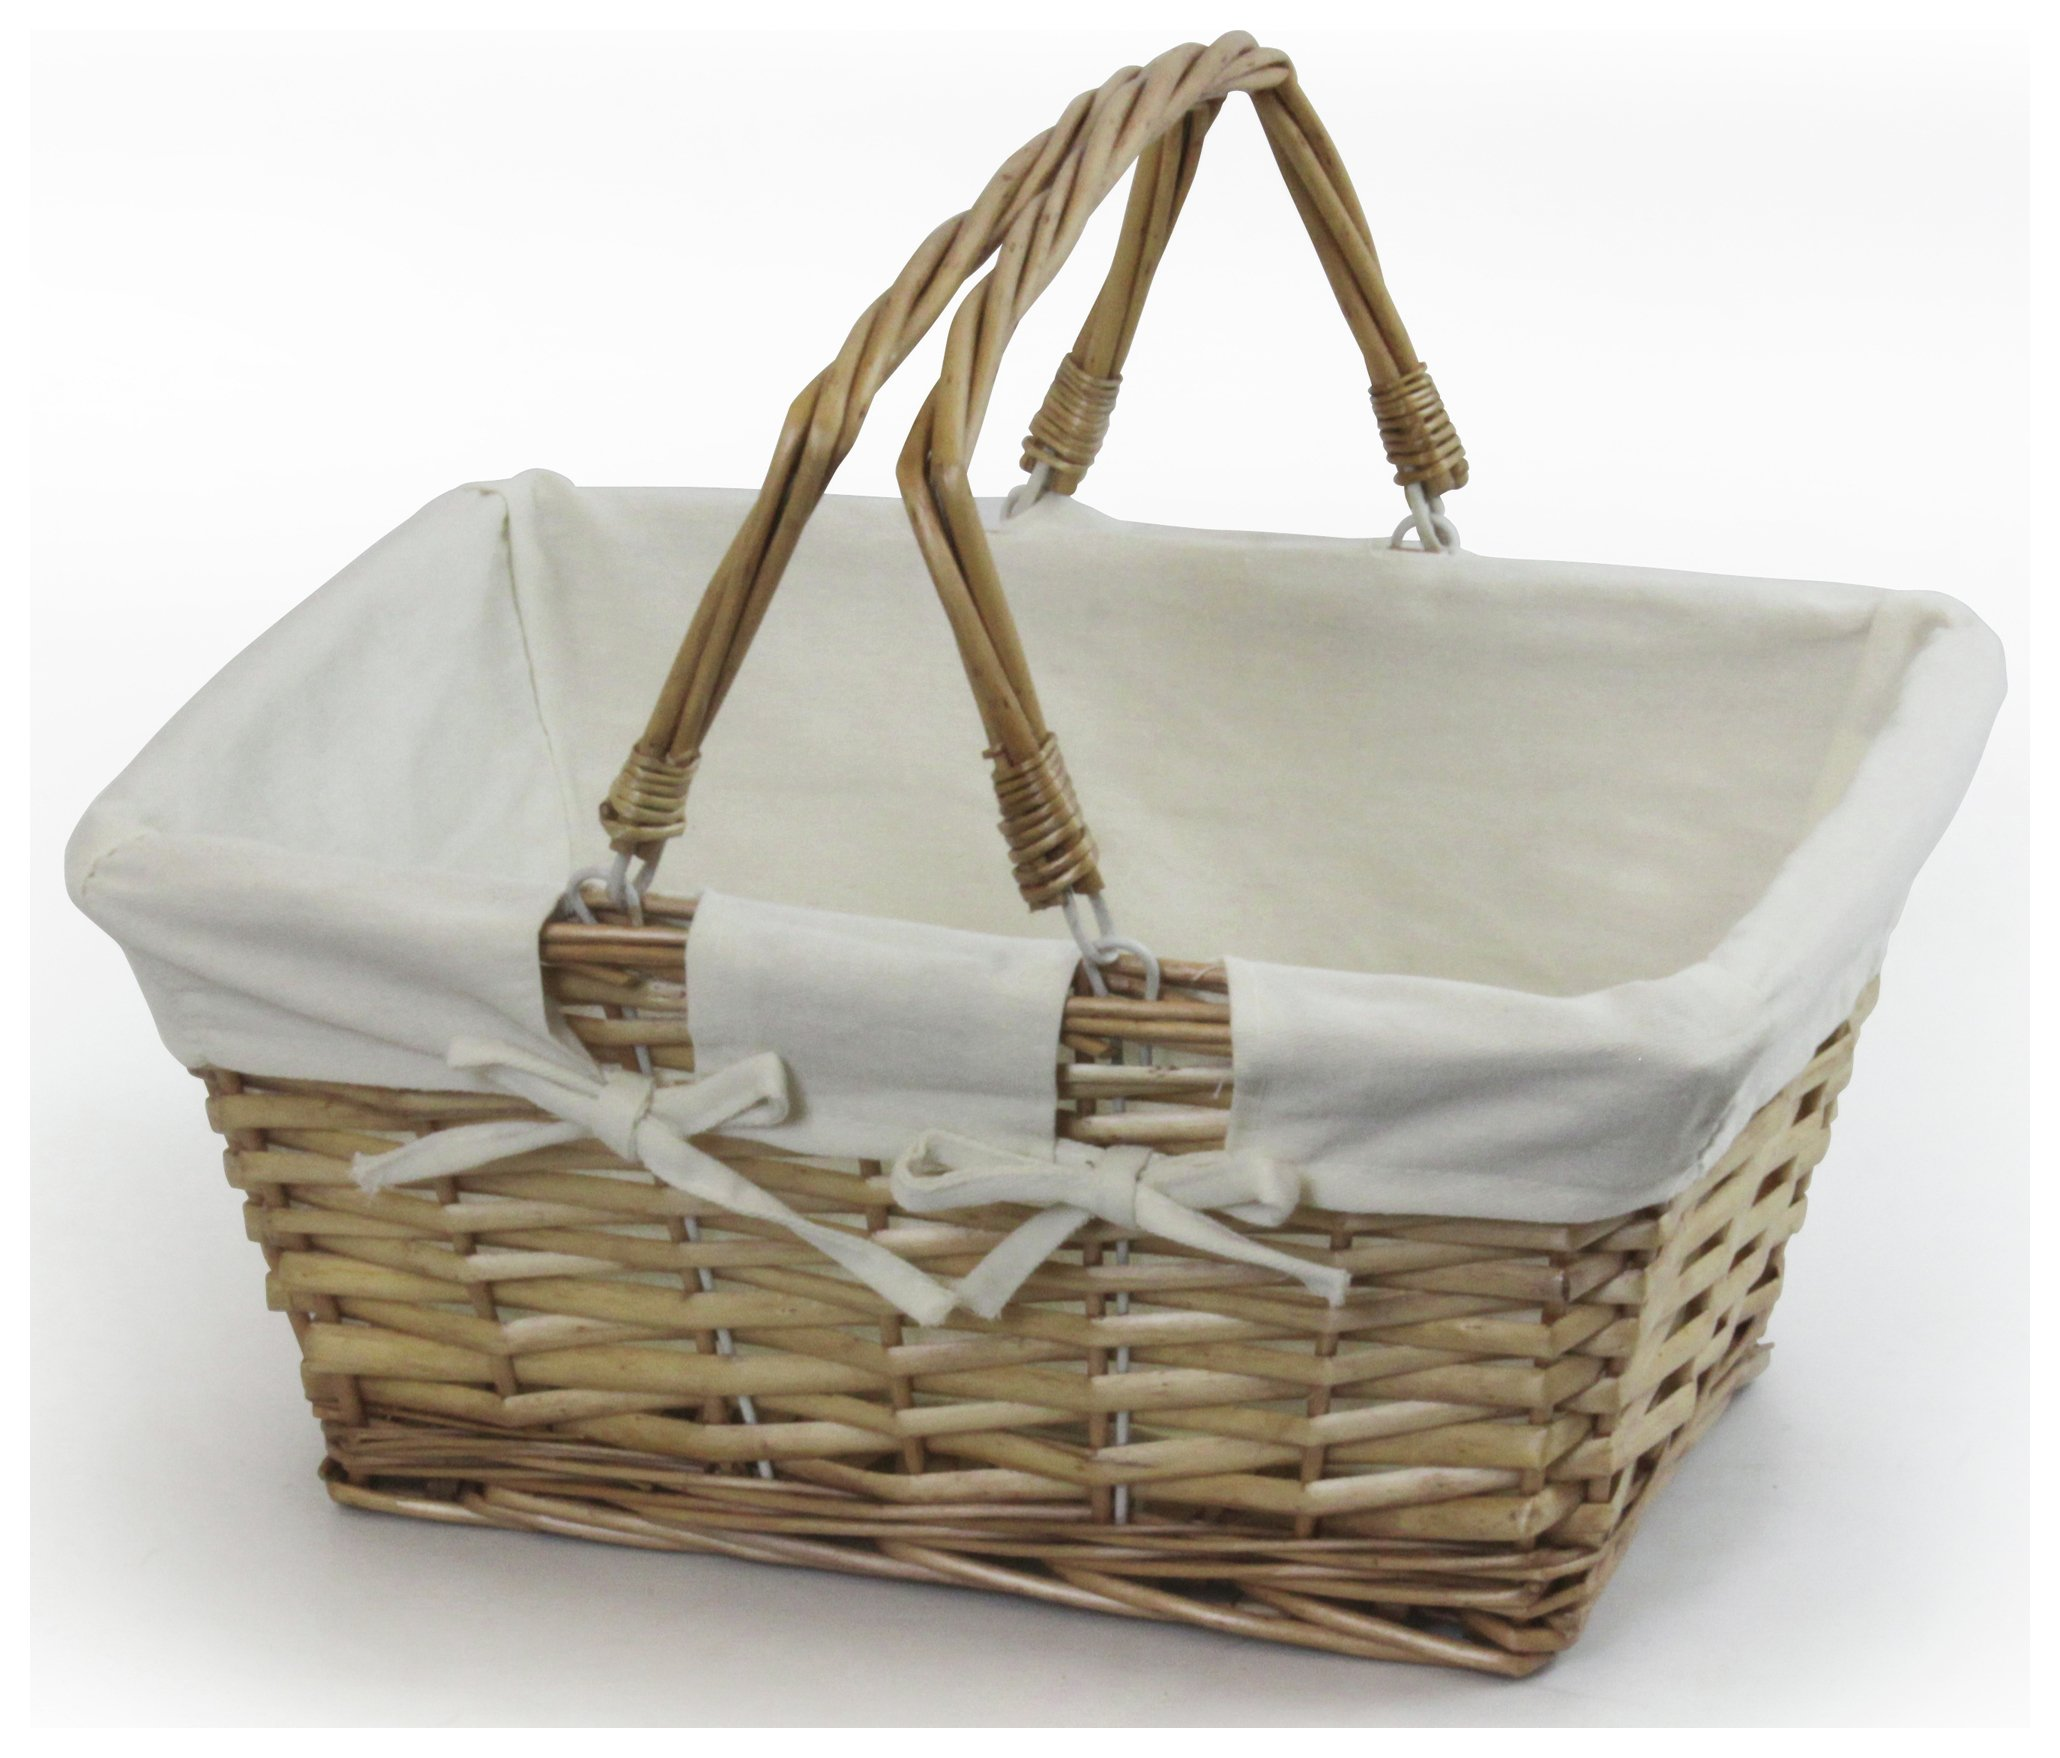 Wicker Log Basket With Handles : Lined wicker log basket with rope handles